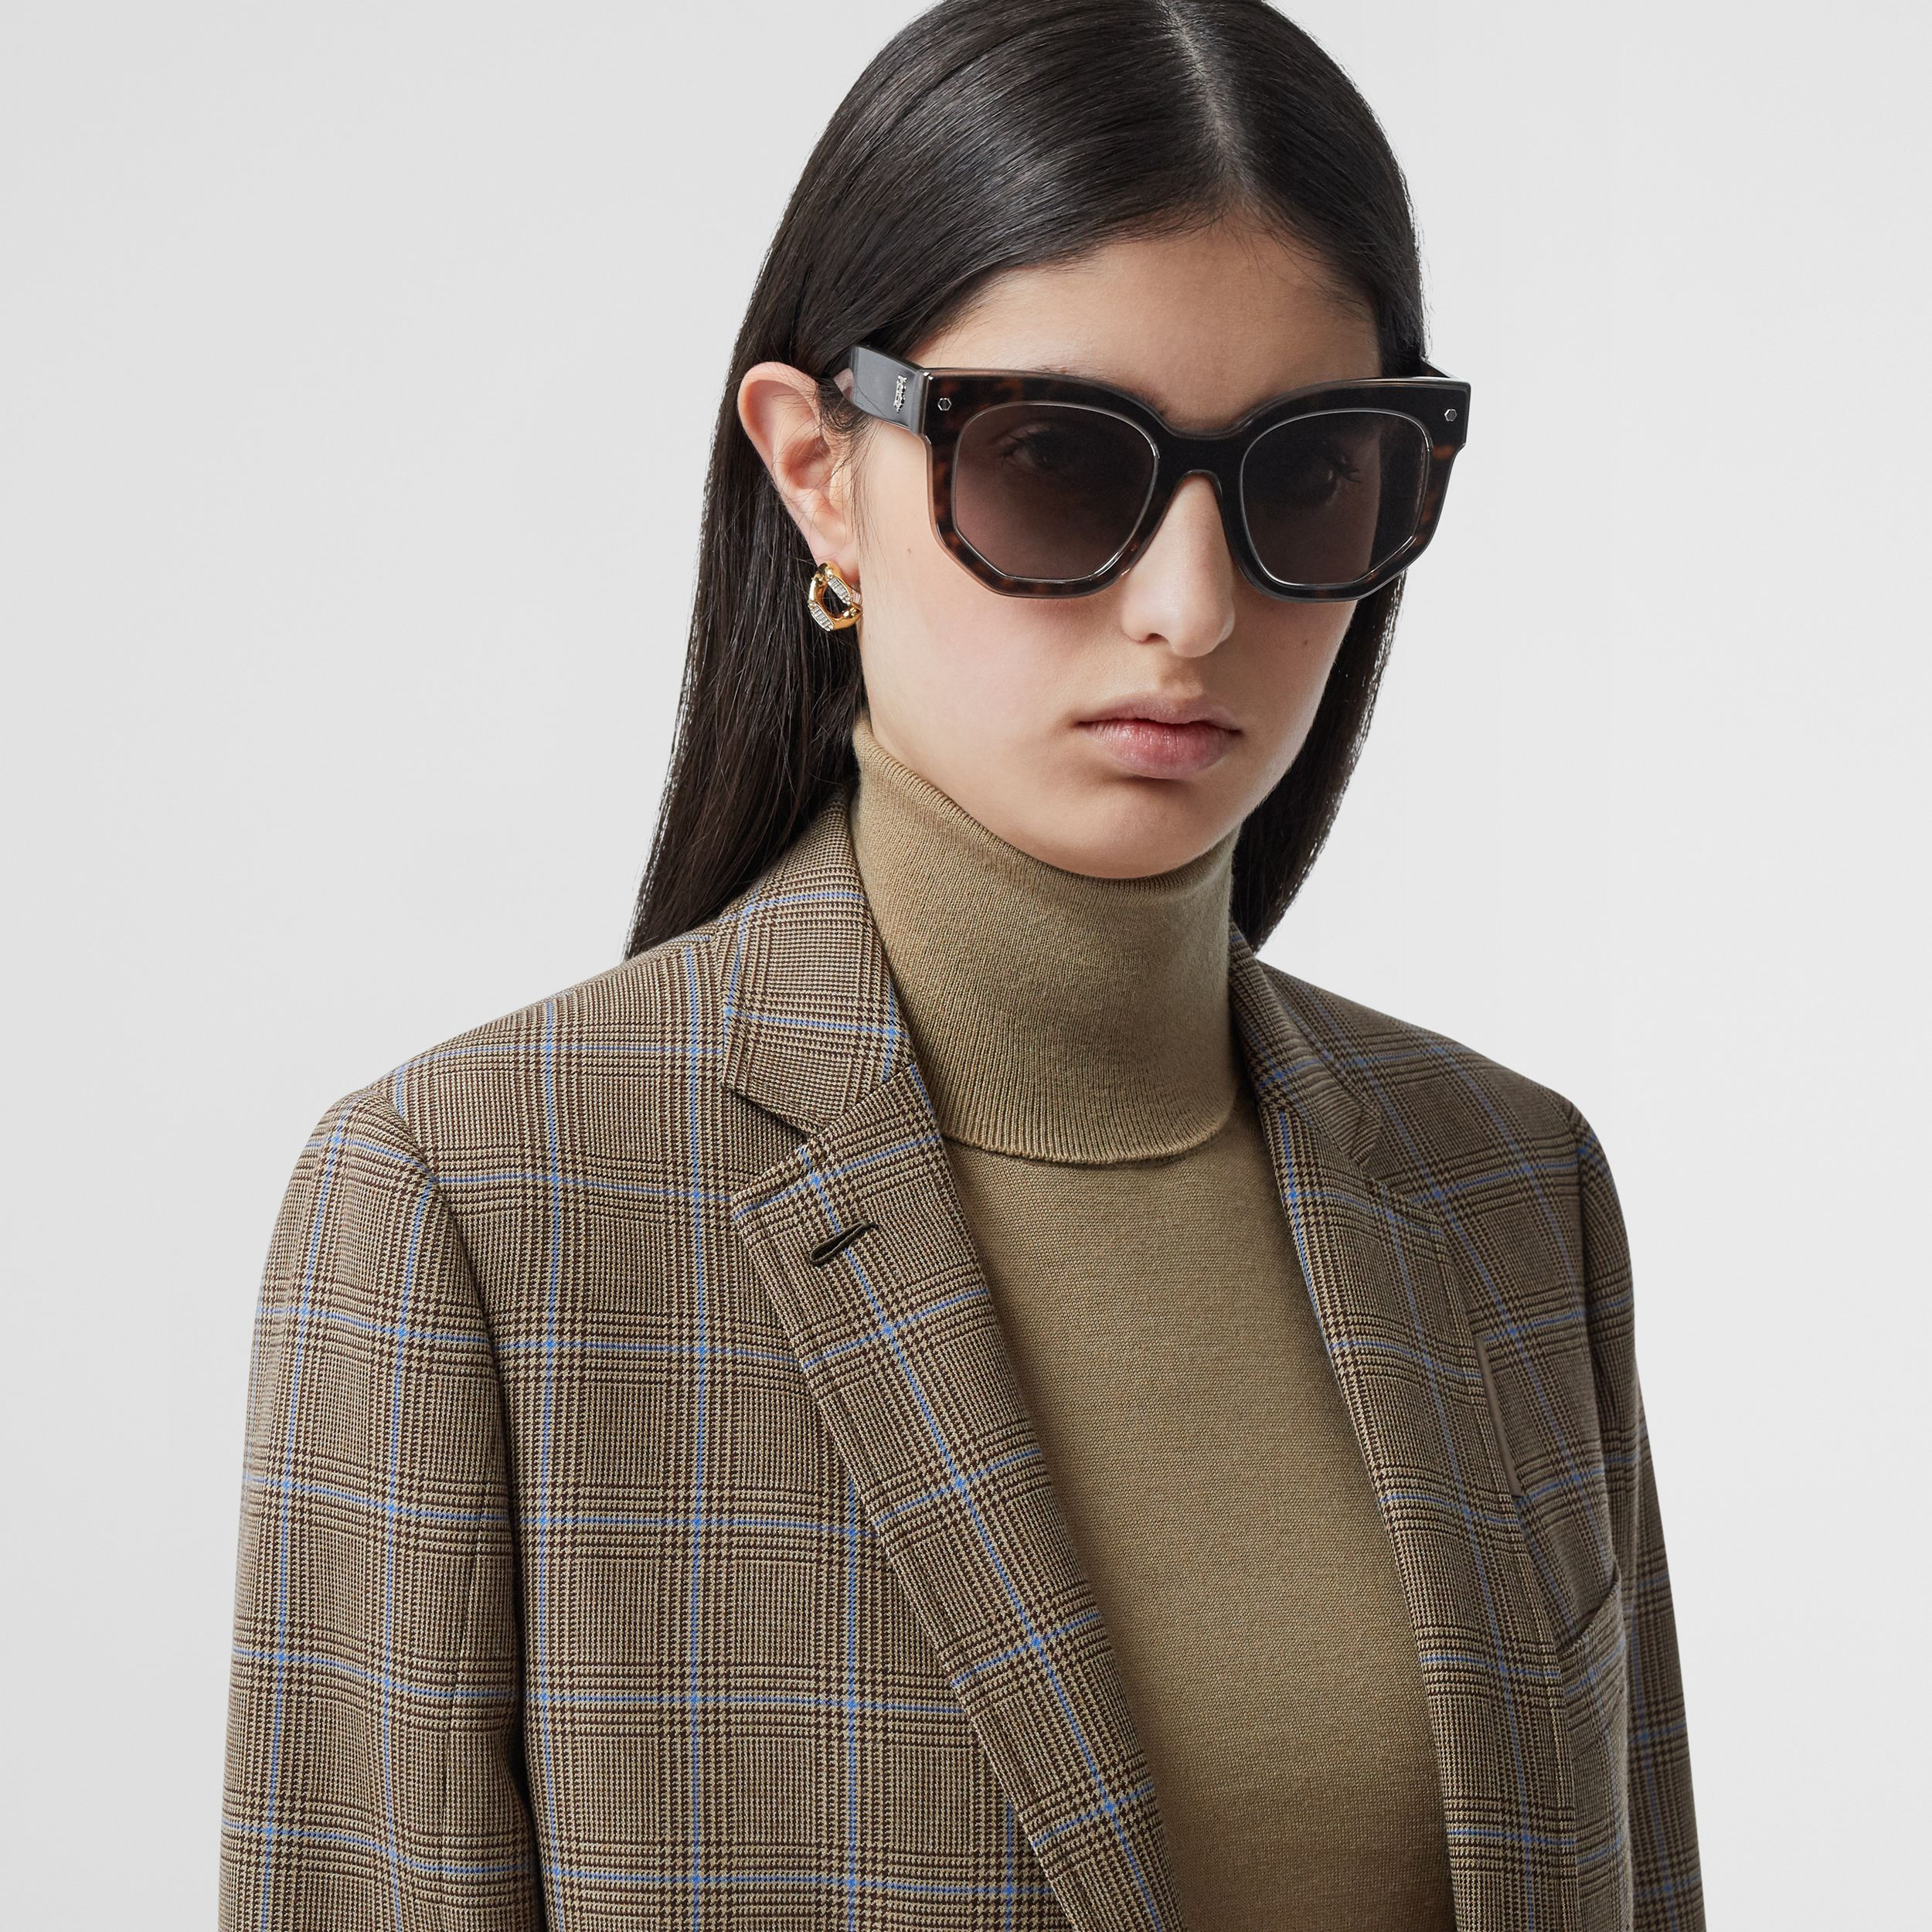 Geometric Frame Sunglasses in Tortoiseshell - Women | Burberry Australia - 3